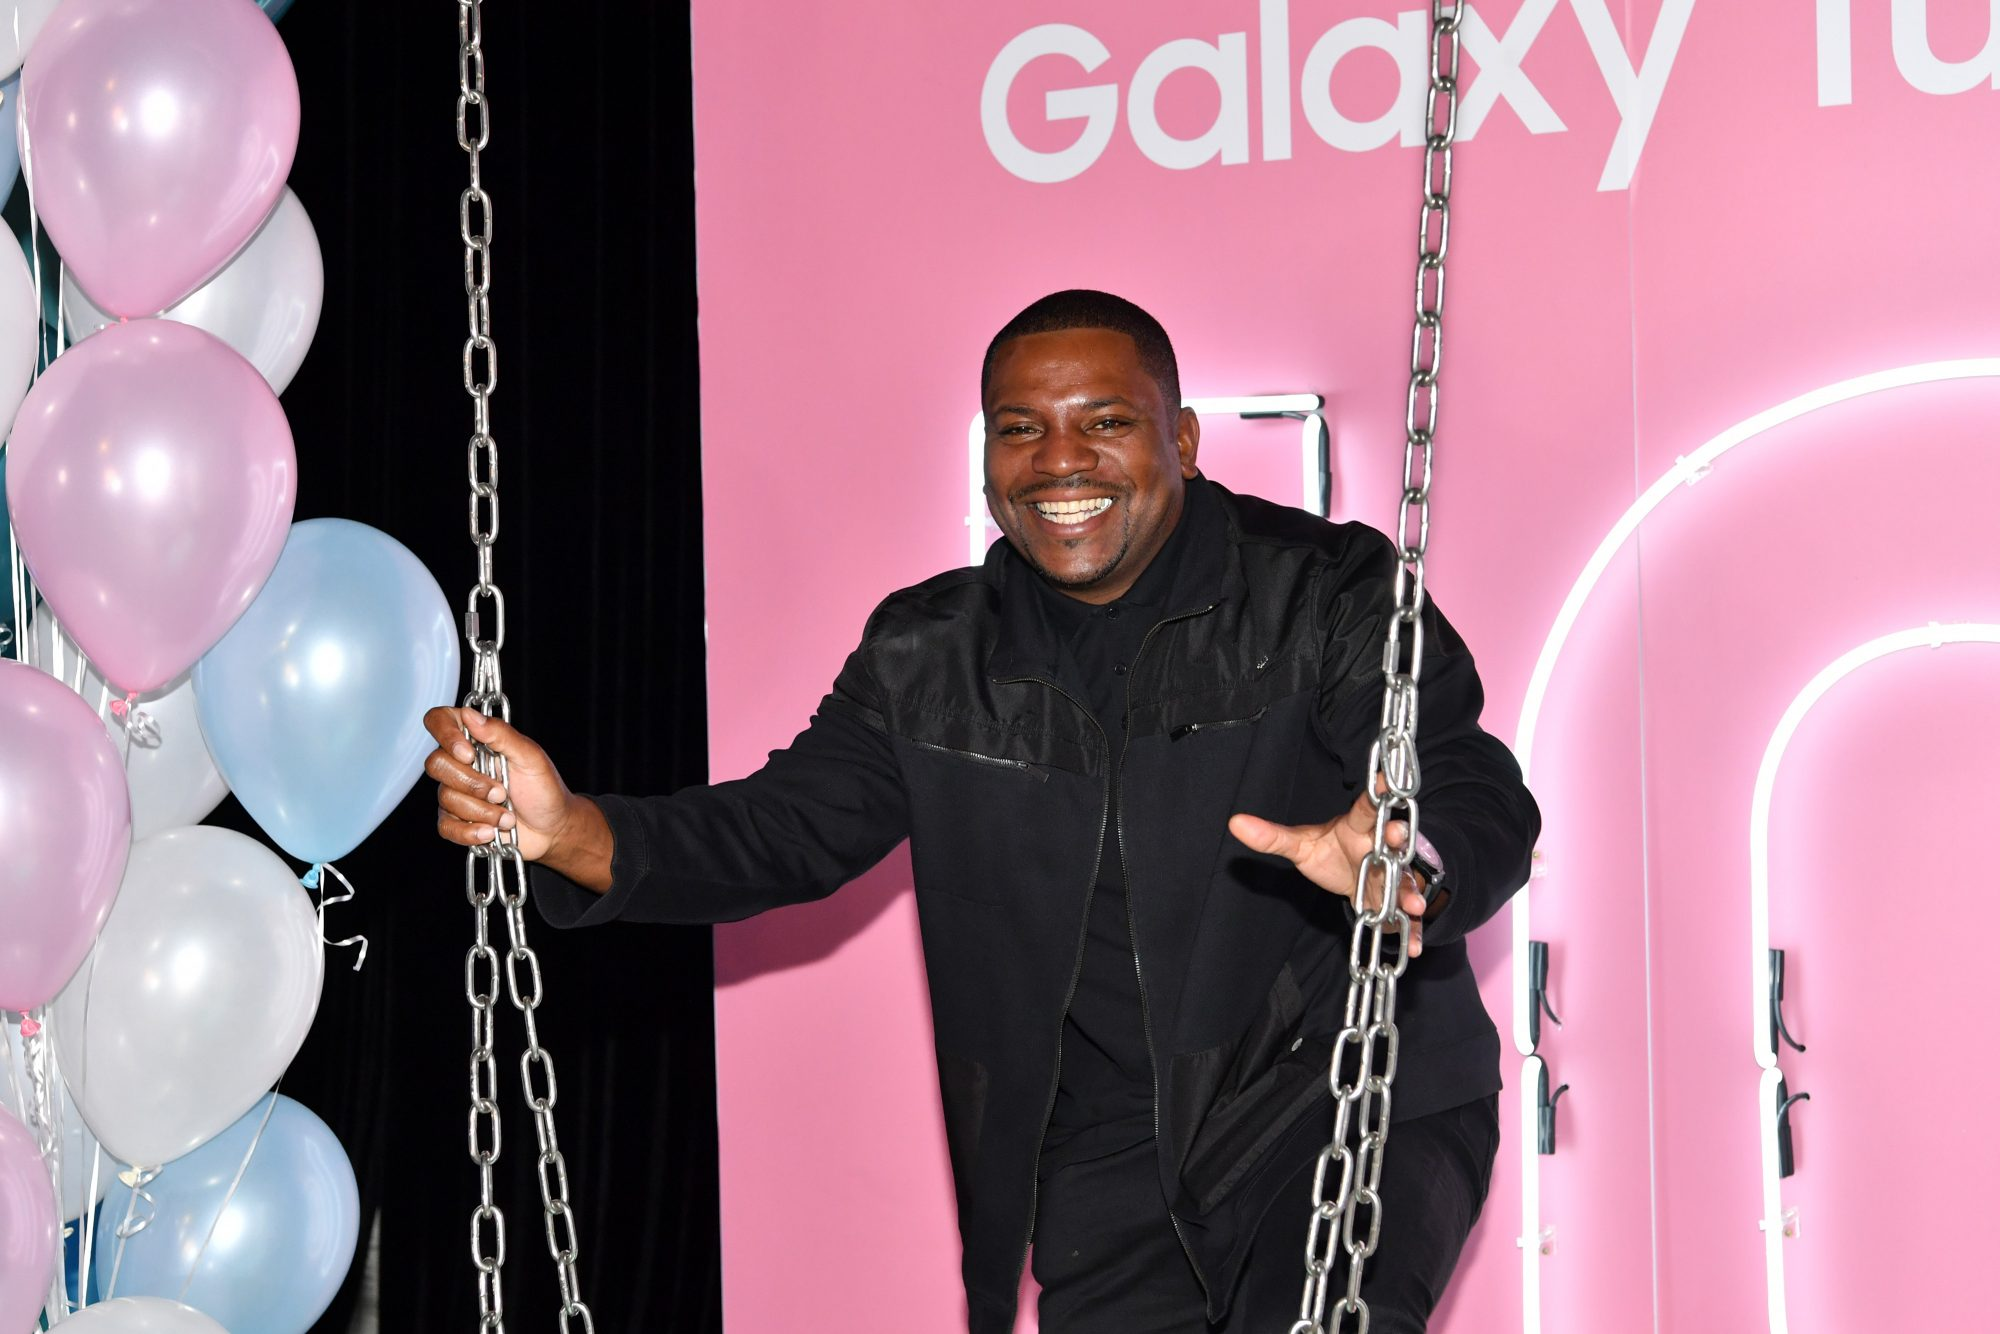 LOS ANGELES, CALIFORNIA - JUNE 18:  Mekhi Phifer attends Samsung's Galaxy Day Los Angeles Celebration at Goya Studios on June 18, 2019 in Los Angeles, California. (Photo by Emma McIntyre/Getty Images for Samsung)